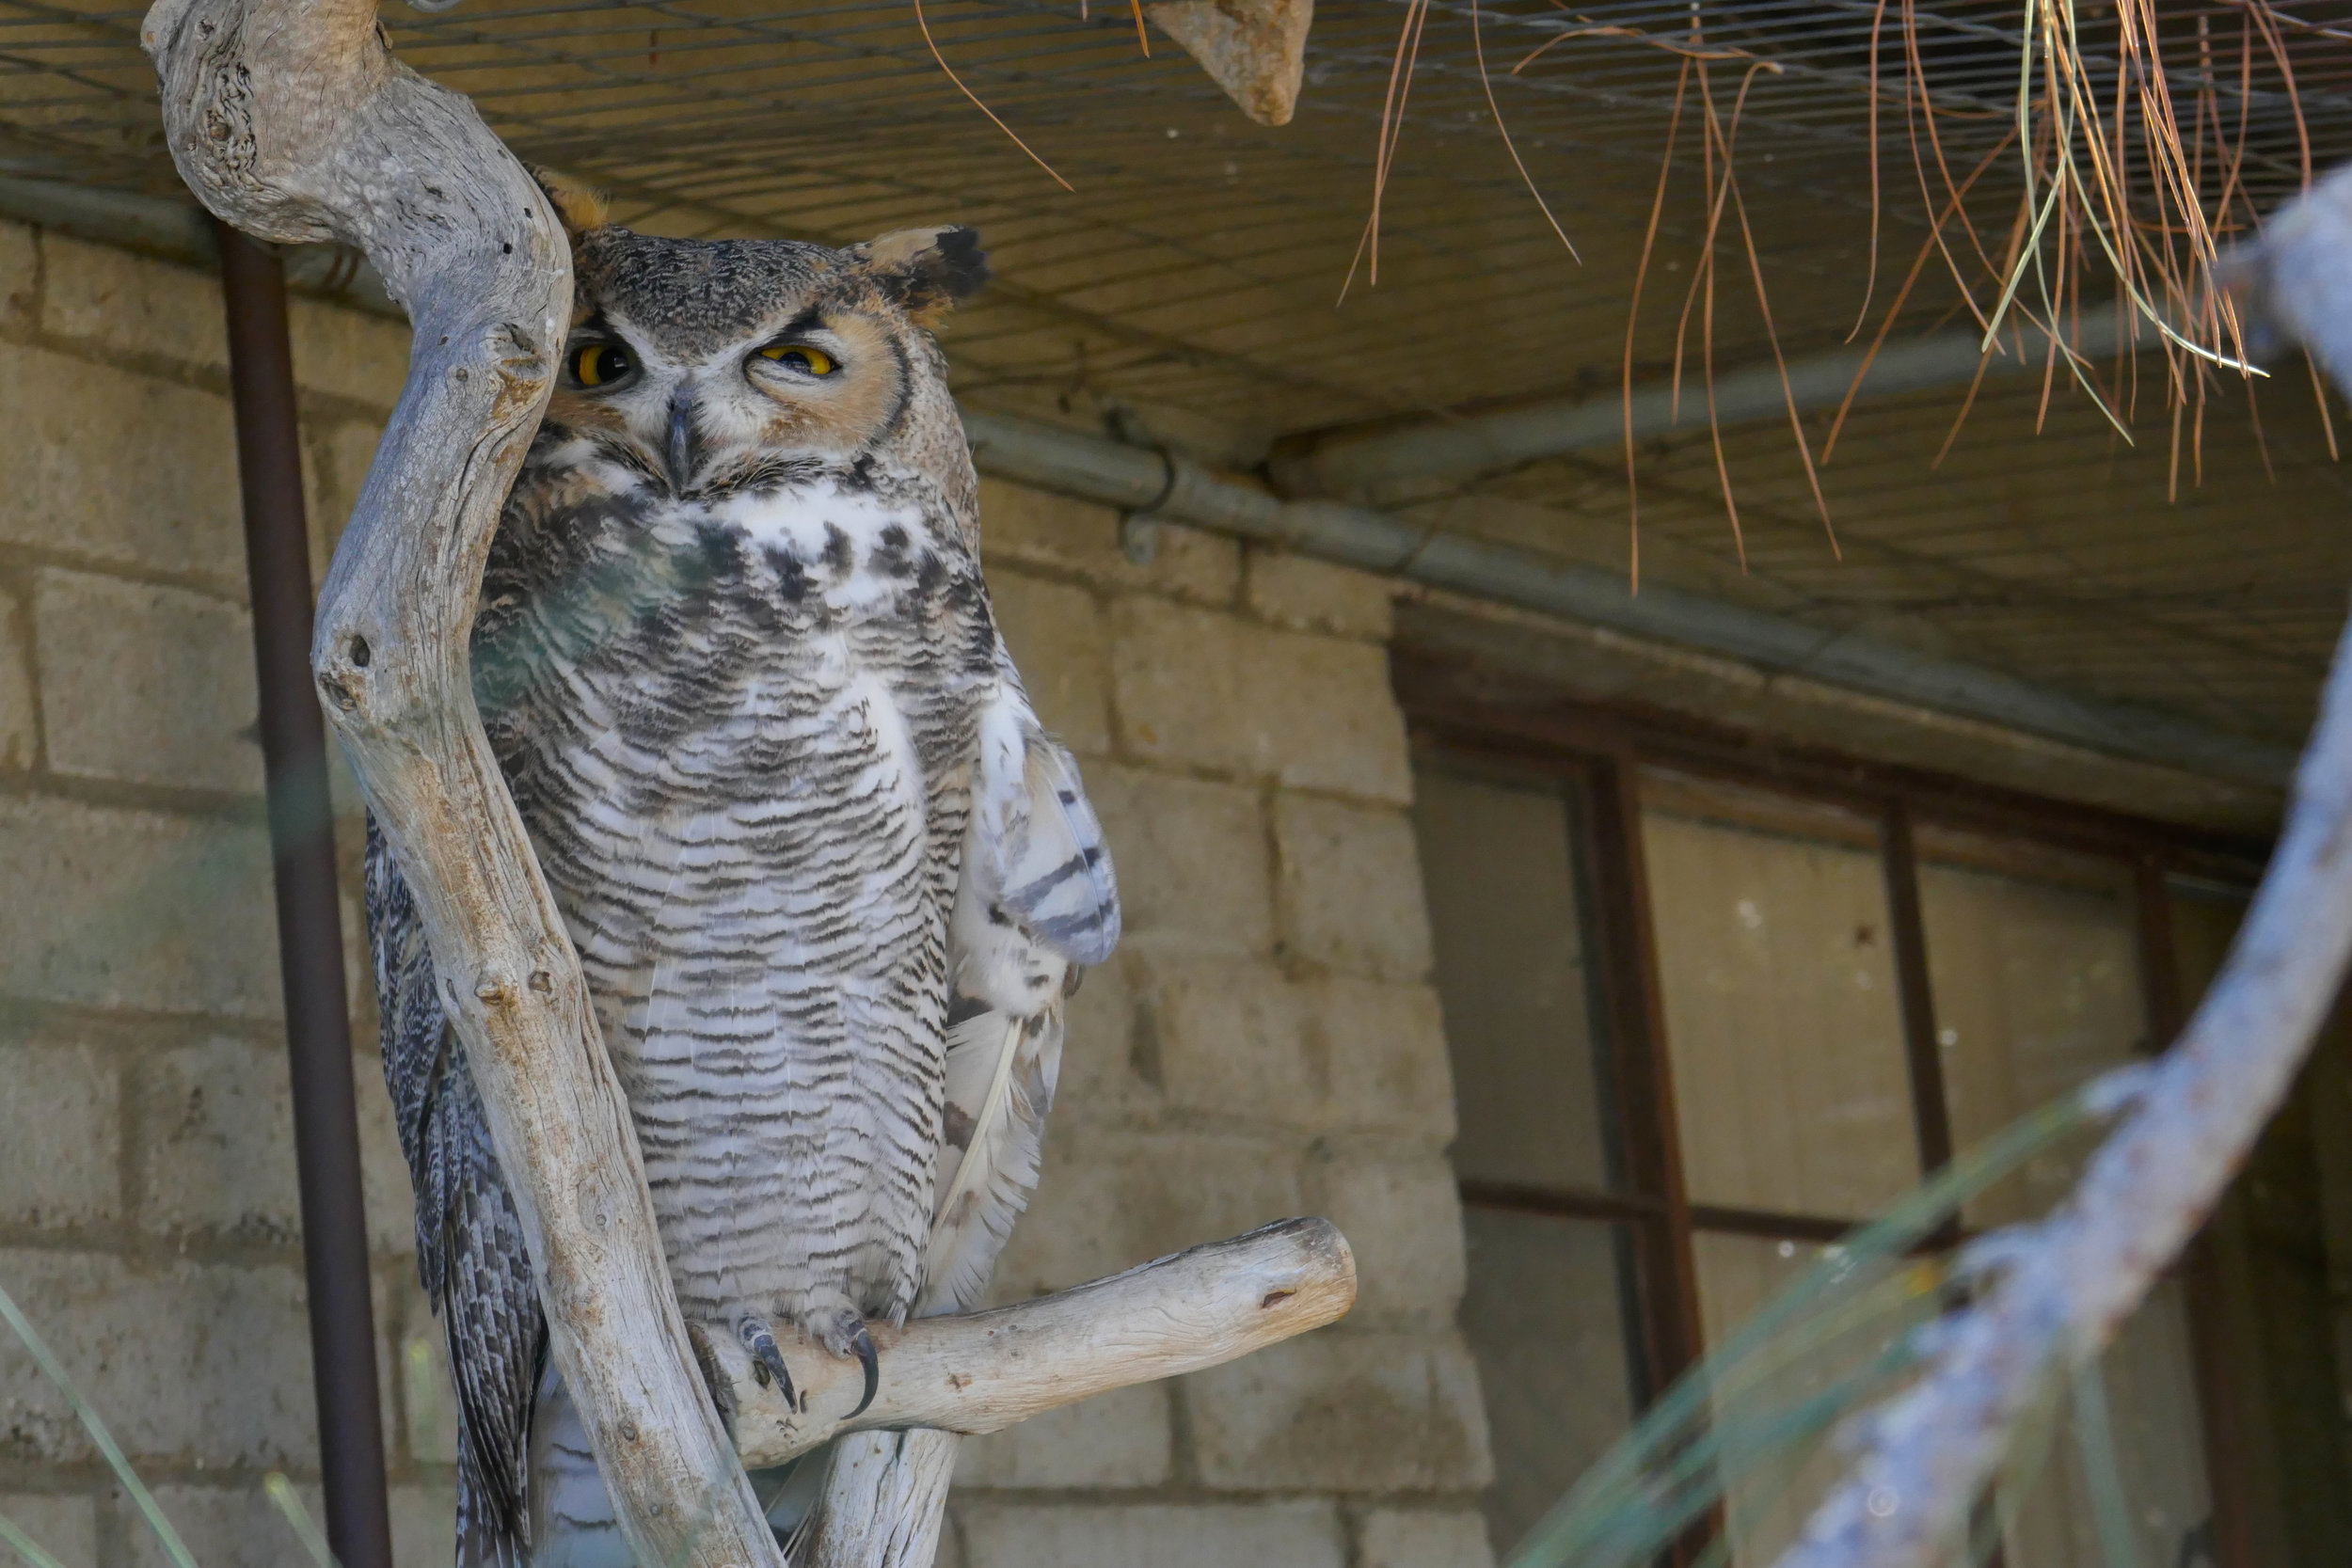 At the nature center we met these two beautiful owls, Squint and...